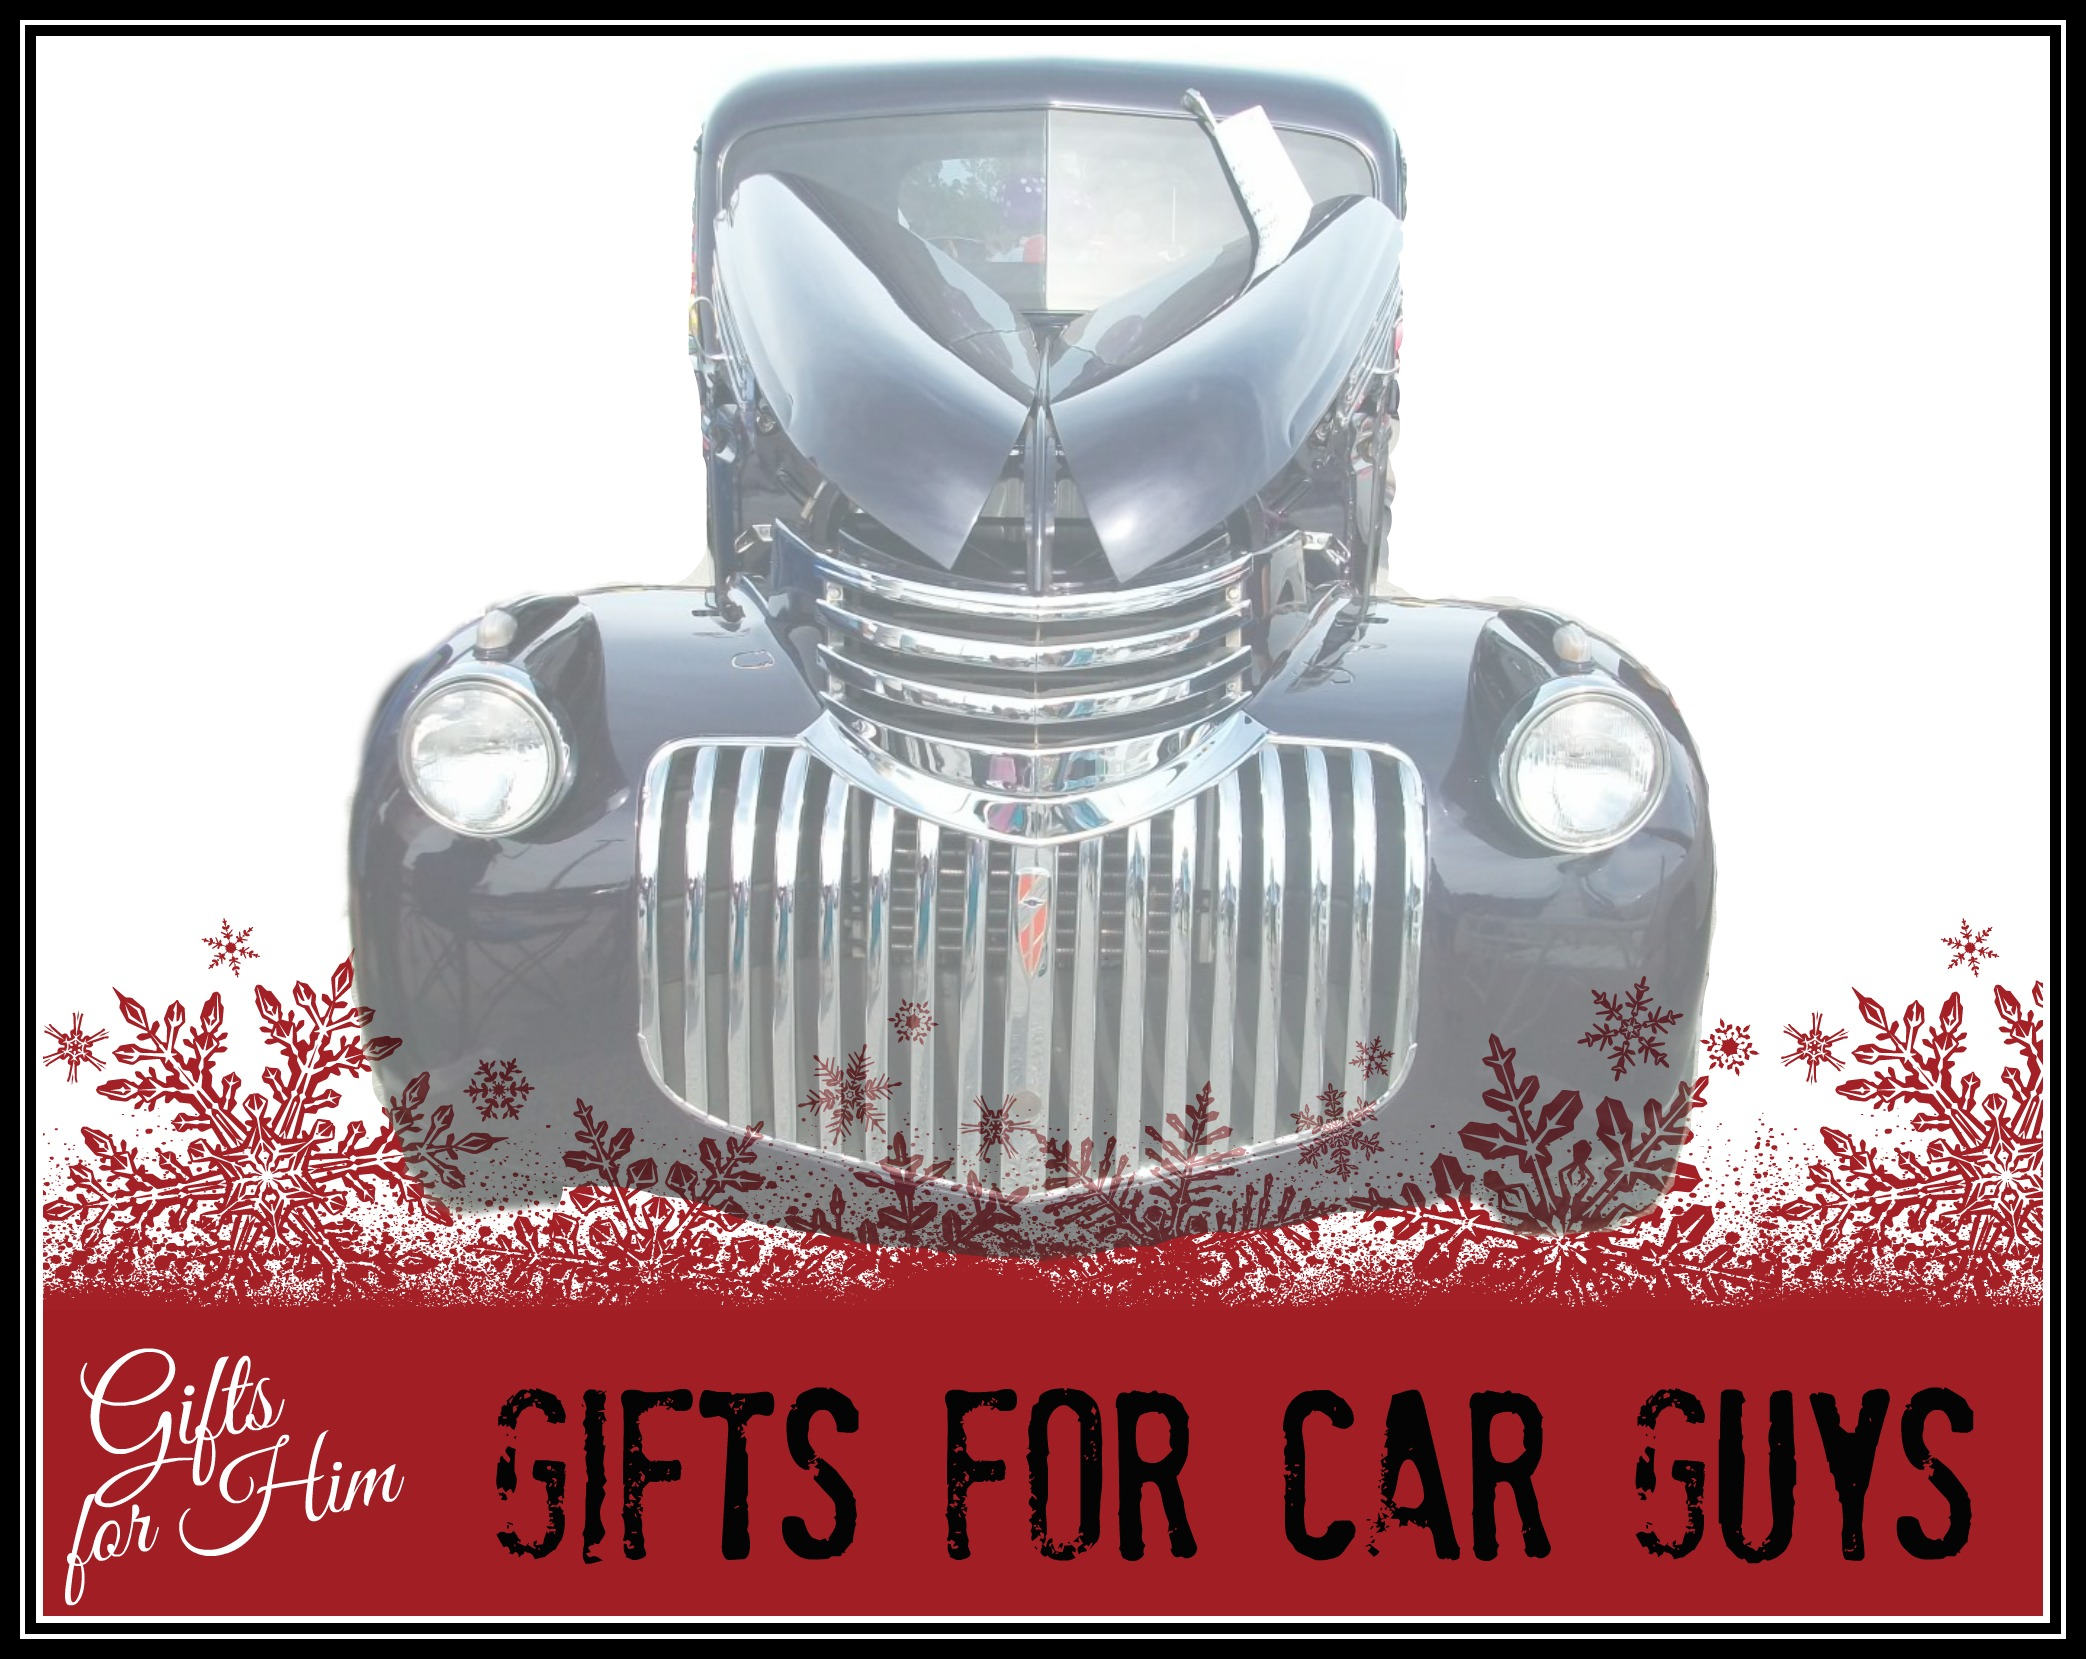 gifts for dad the car guy mommy 39 s playbook. Black Bedroom Furniture Sets. Home Design Ideas